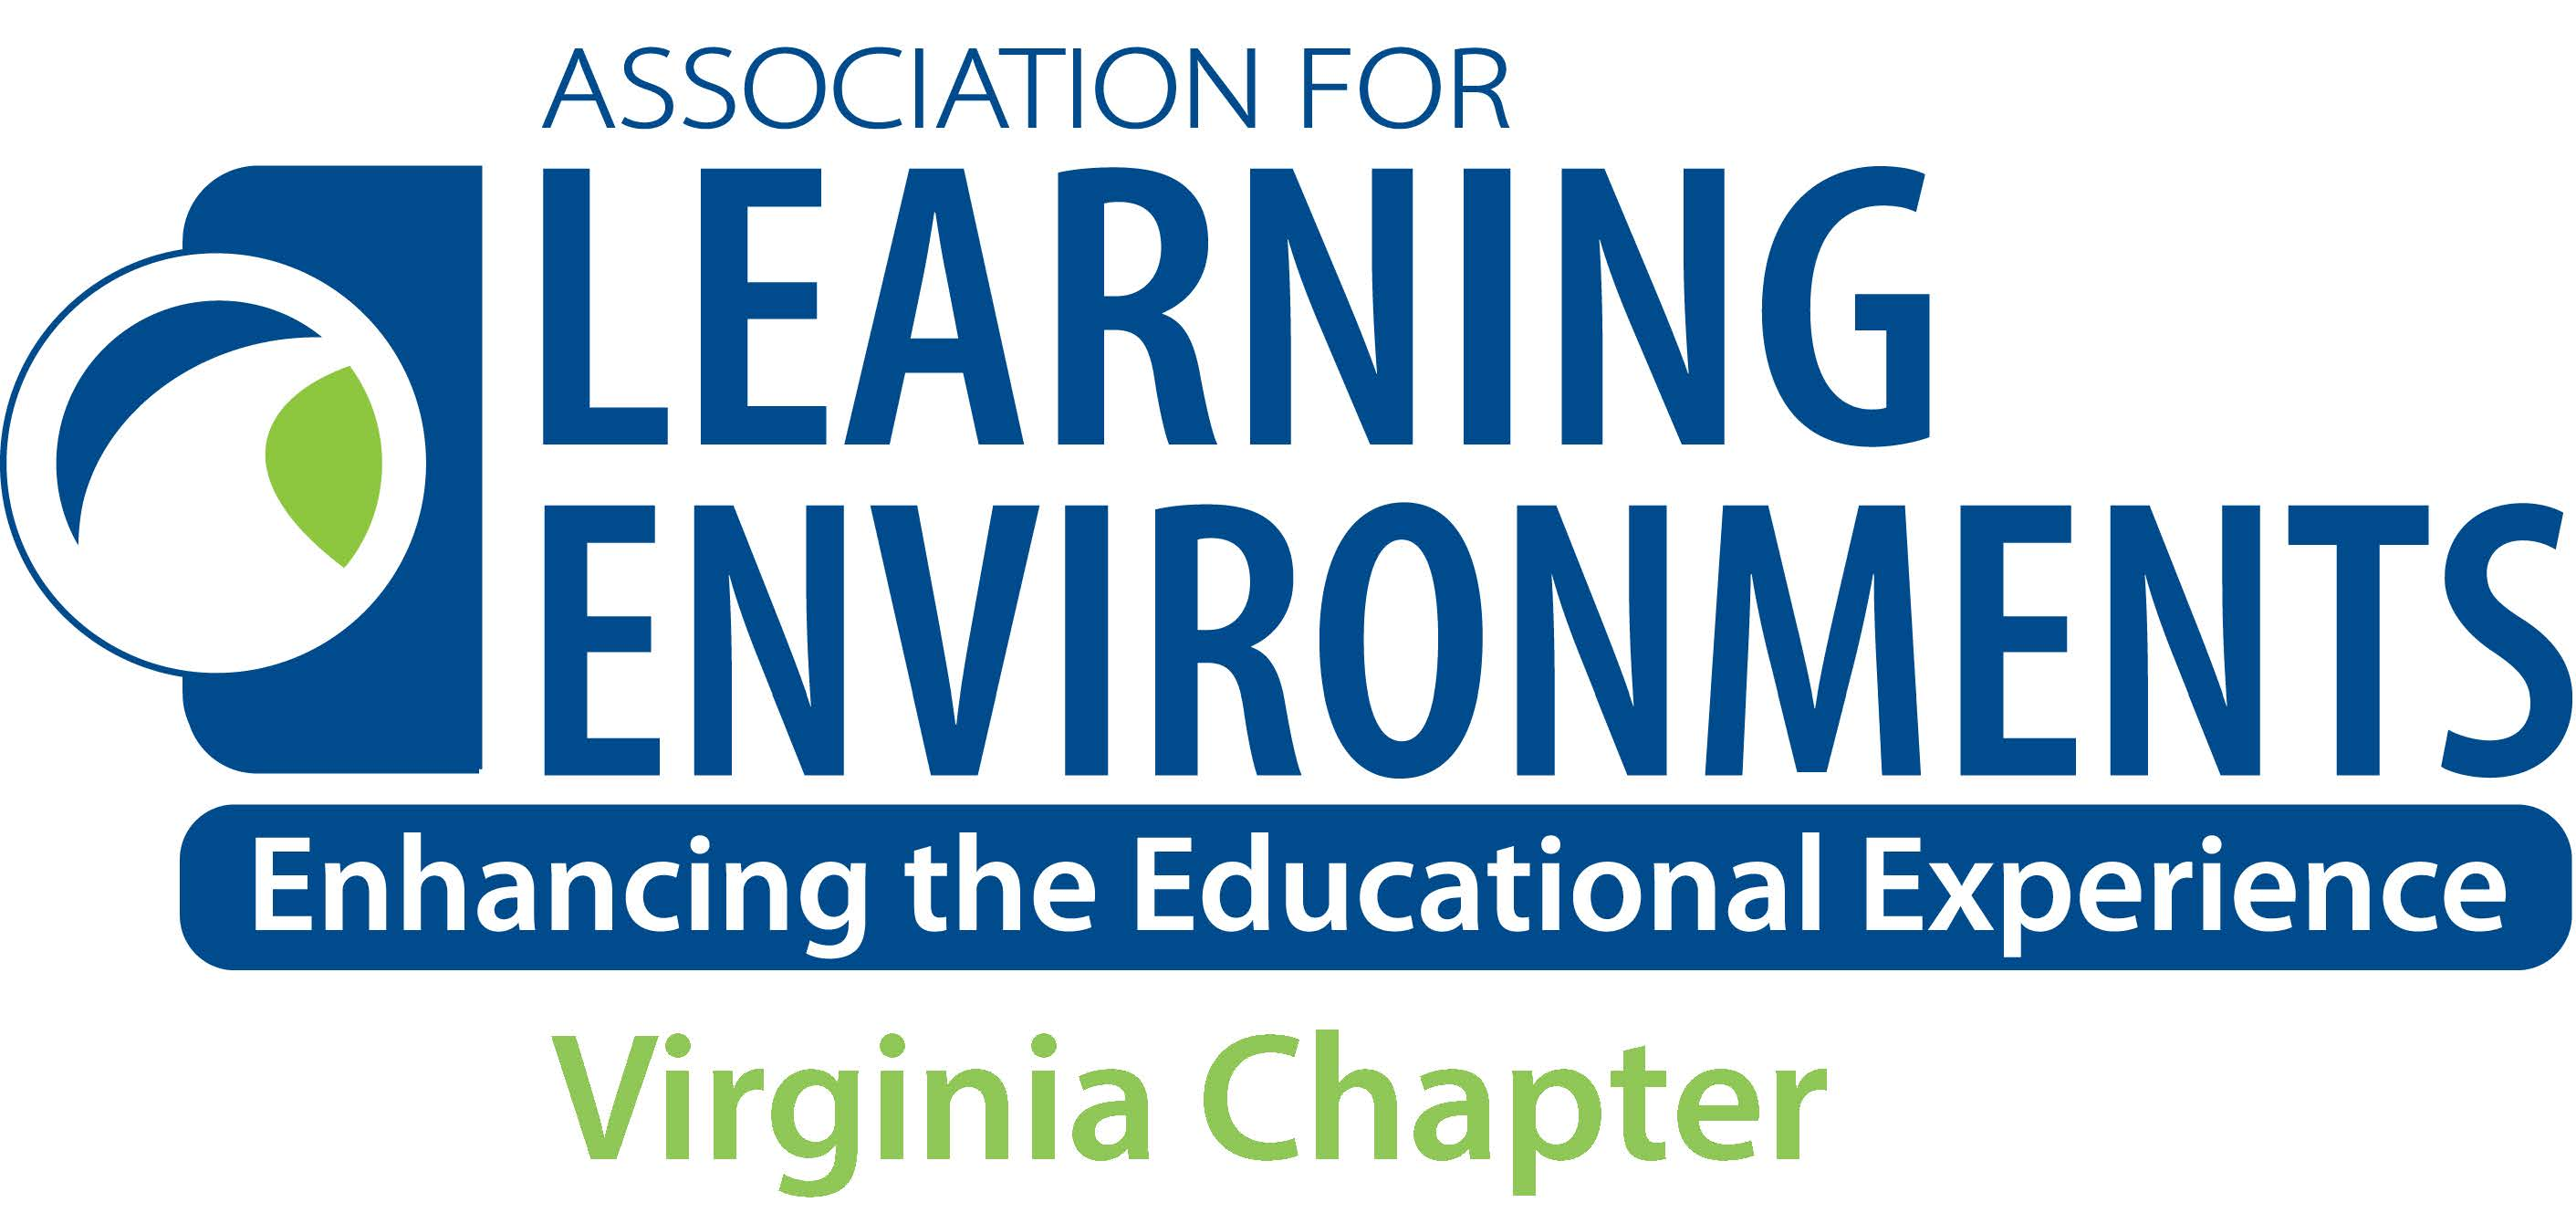 2019 Virginia Chapter Annual Conference